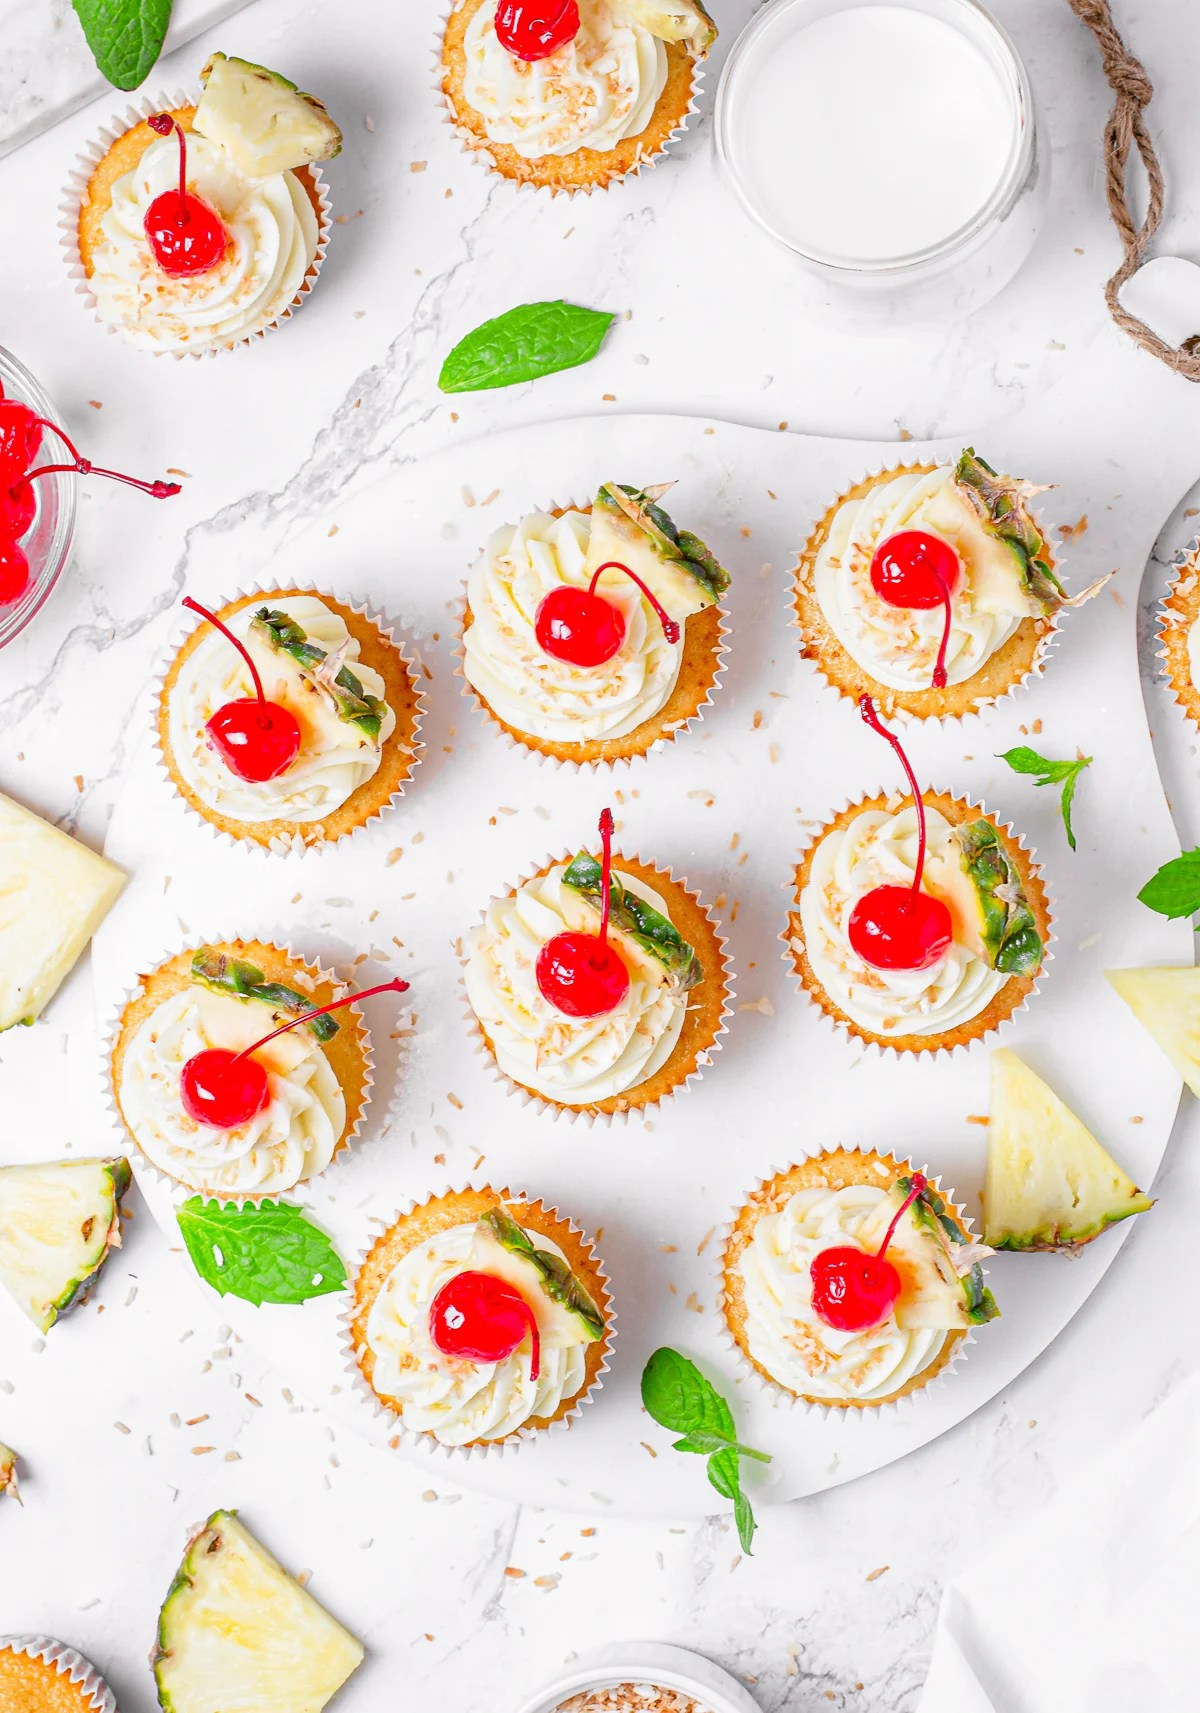 Overhead of cupcakes on white platter with pineapple surrounding it